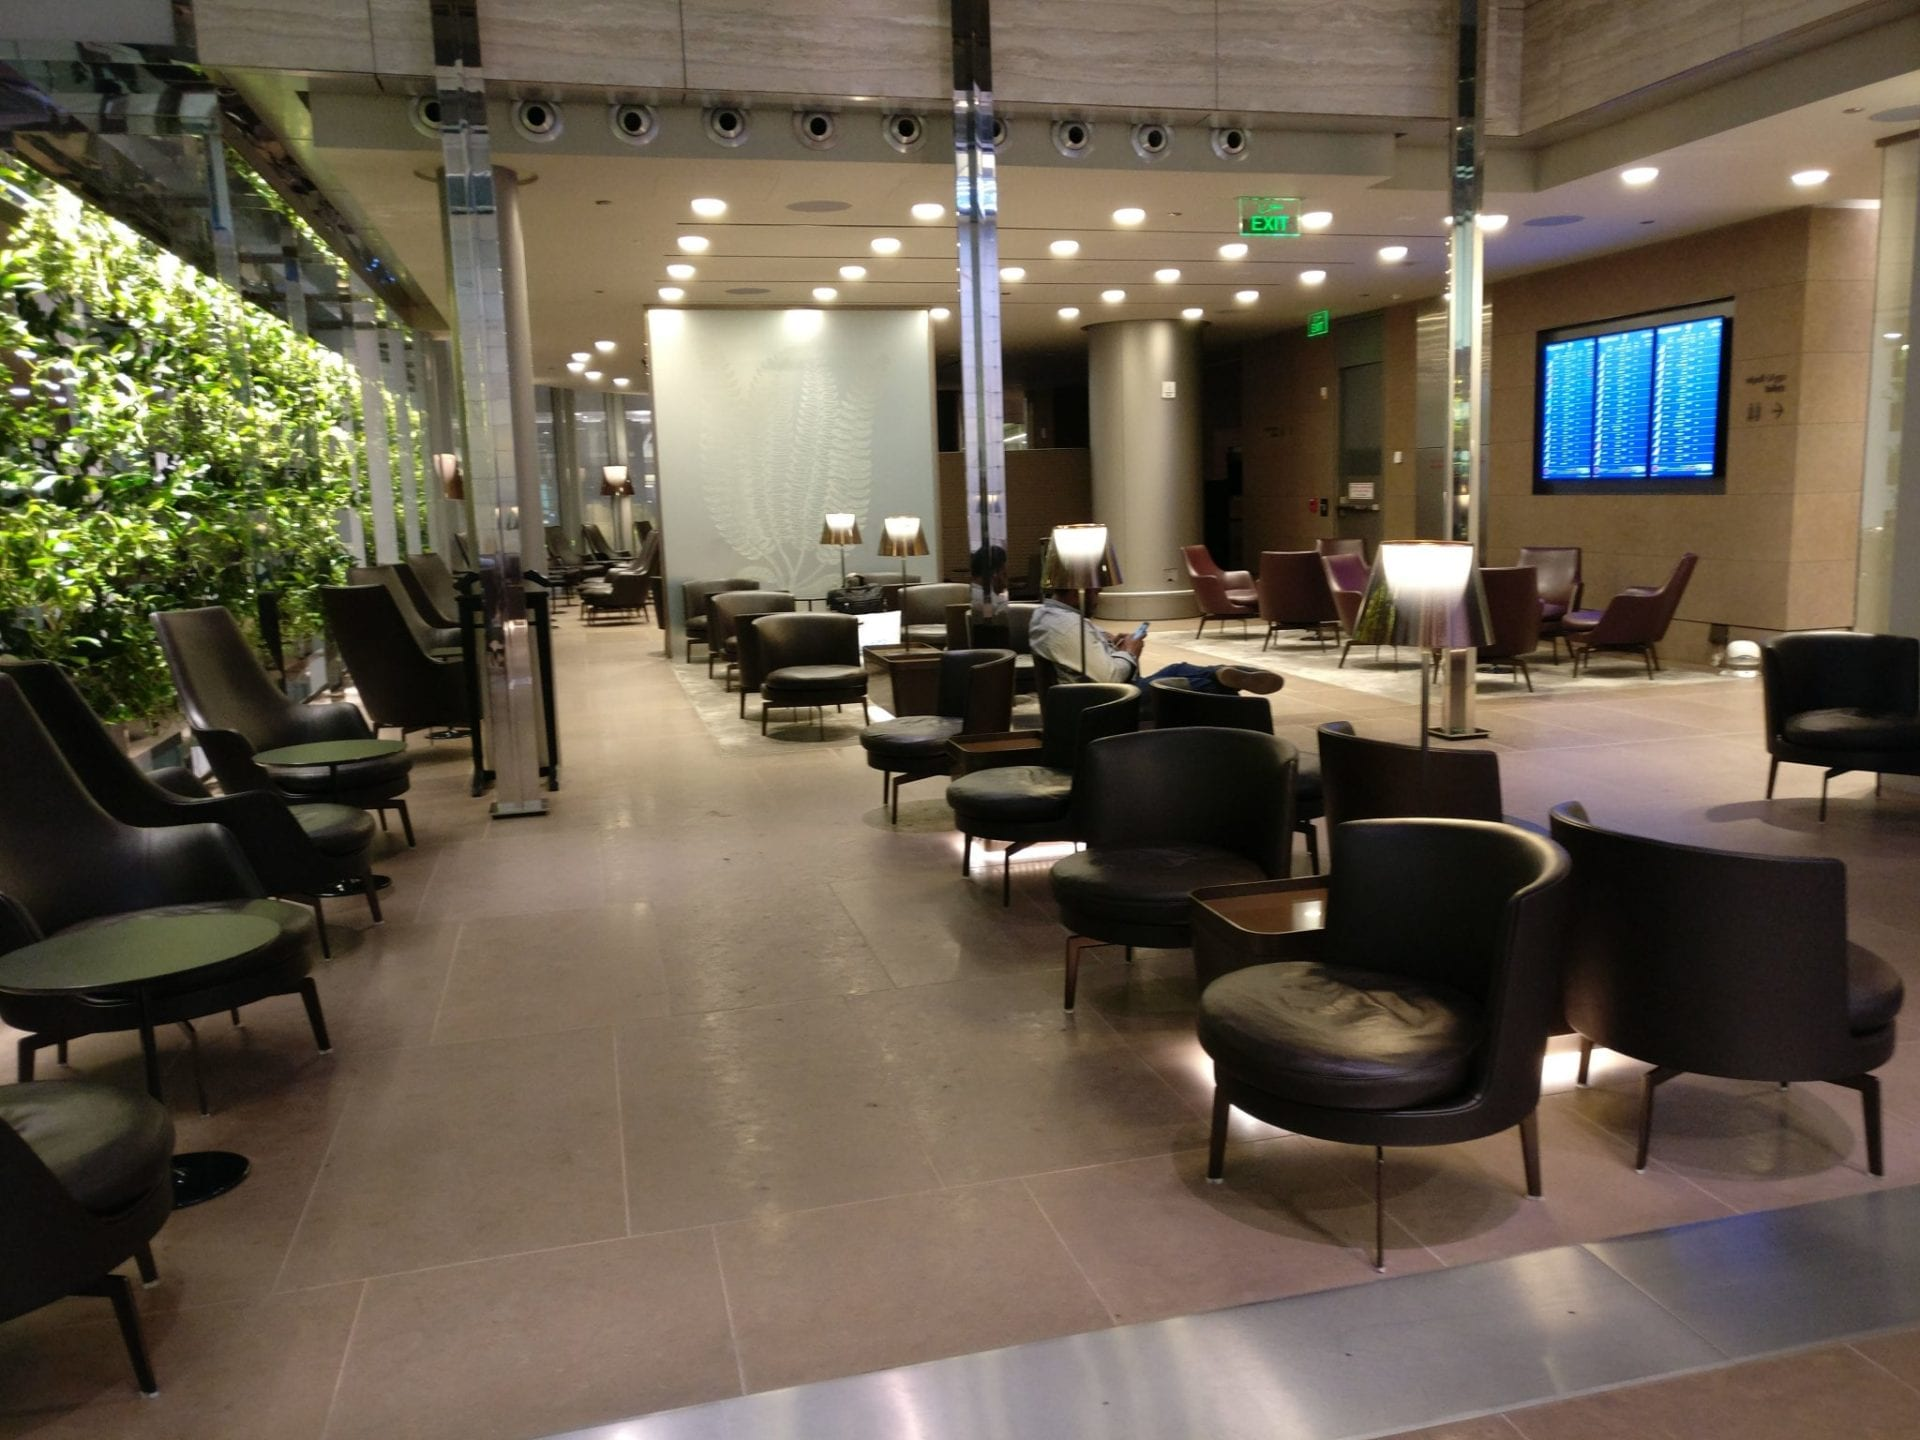 First Class Lounge Doha Seating 7